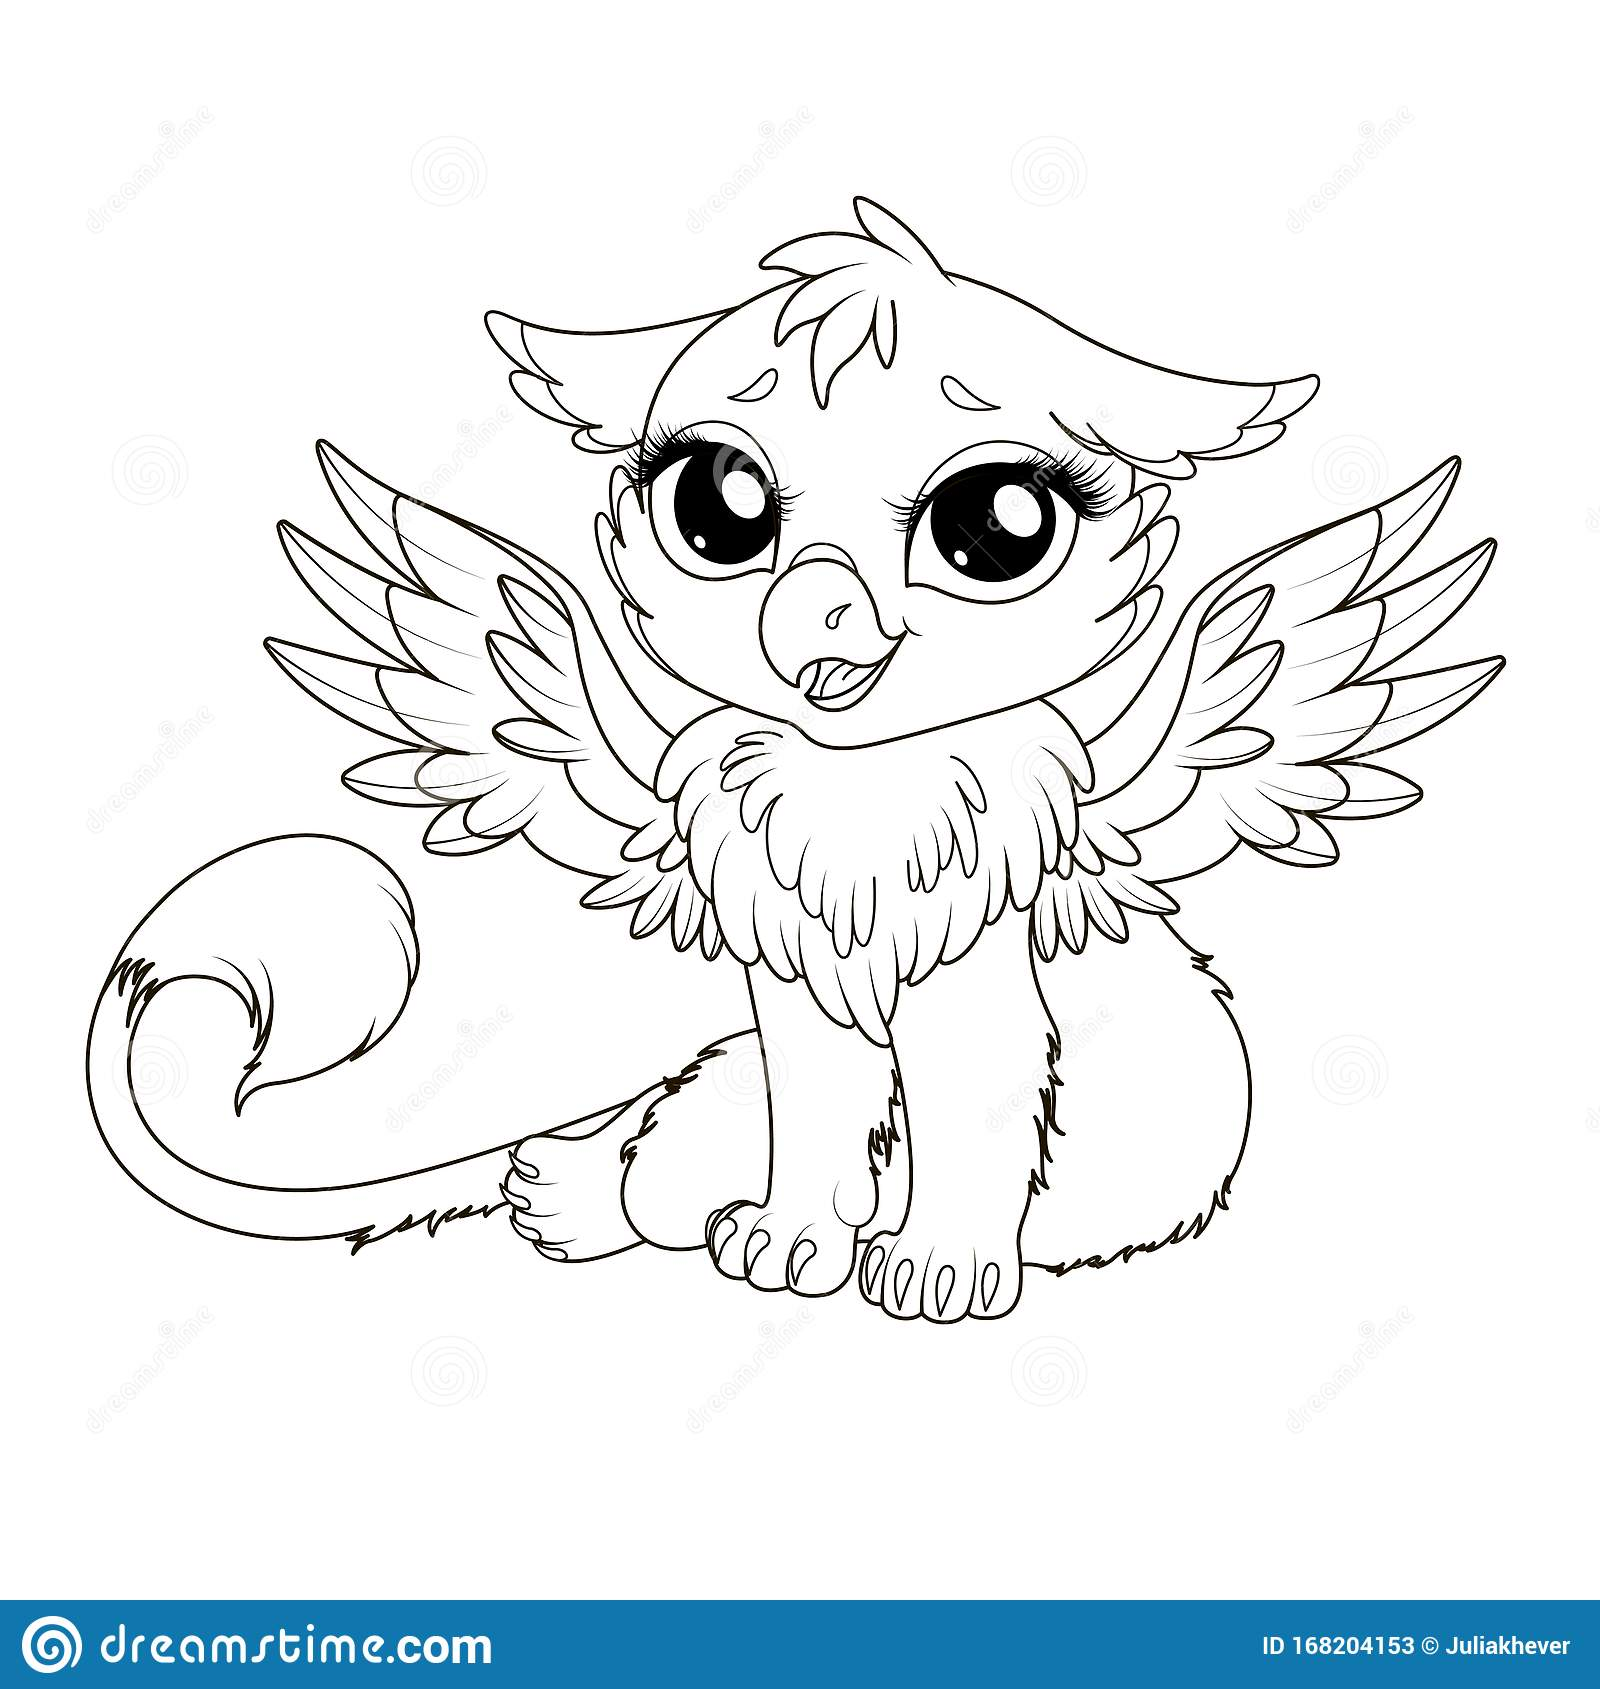 Coloring Page For Kids With Funny Cartoon Griffin Stock Vector Illustration Of Children Design 168204153